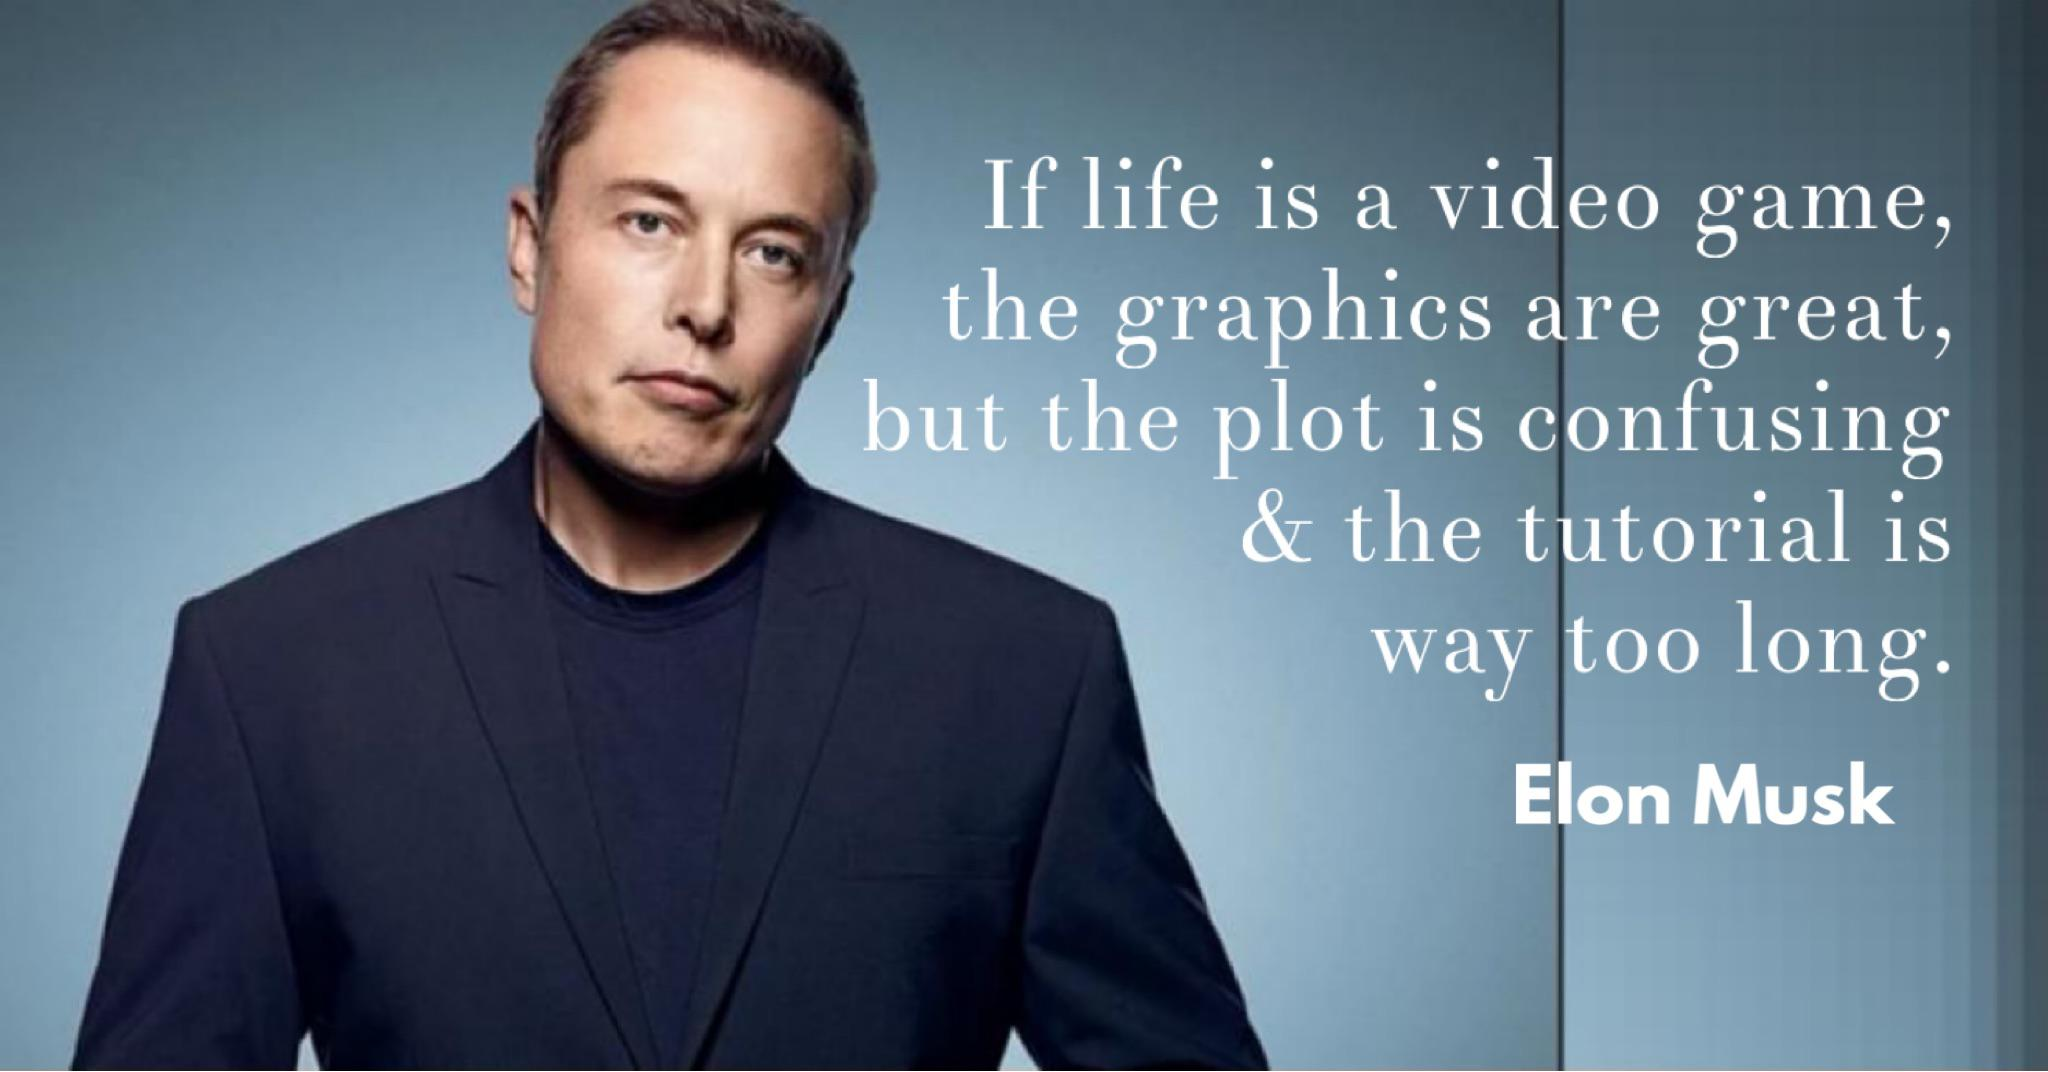 """If life is a video game, the graphics are great, but the plot is confusing & the tutorial is way too long."" – Elon Musk [2048×1072]"